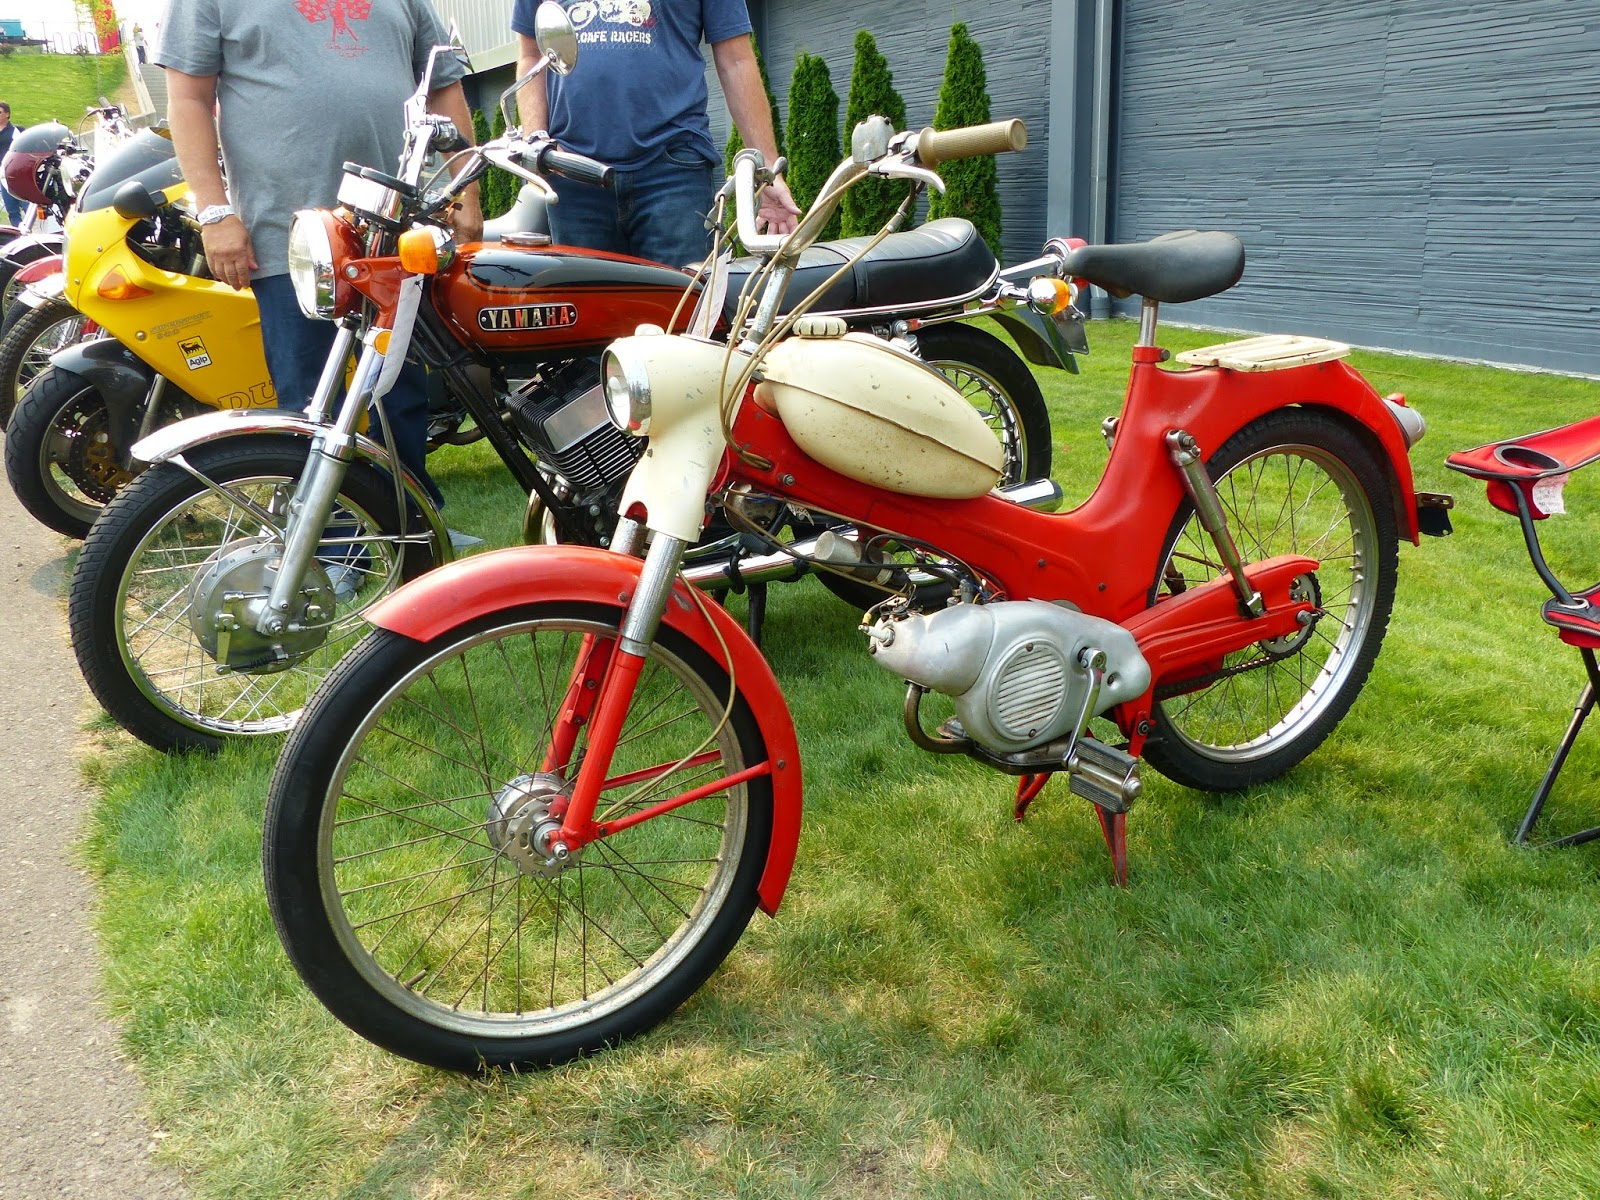 Oldmotodude 1961 sears allstate for sale for 1300 at the meet 1961 sears allstate for sale for 1300 at the meet 2015 vintage motorcycle festival tacoma wa sciox Gallery